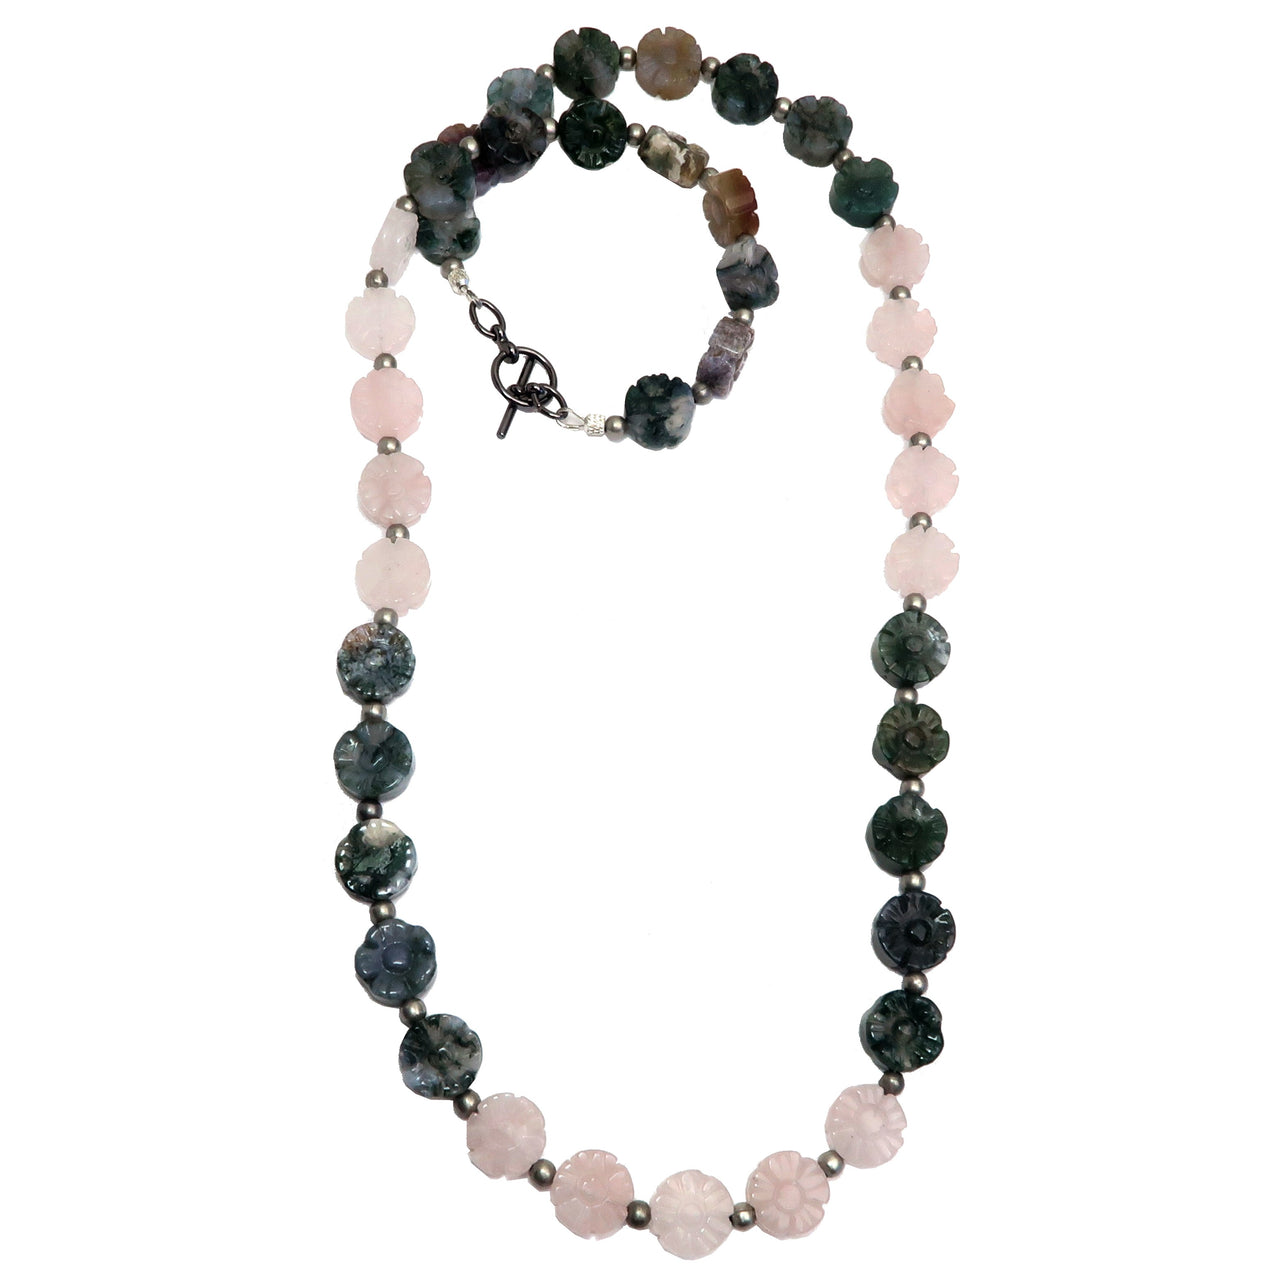 Rose Quartz Necklace Boutique Flower Pink Green Moss Agate Pretty Gemstone Carved B02